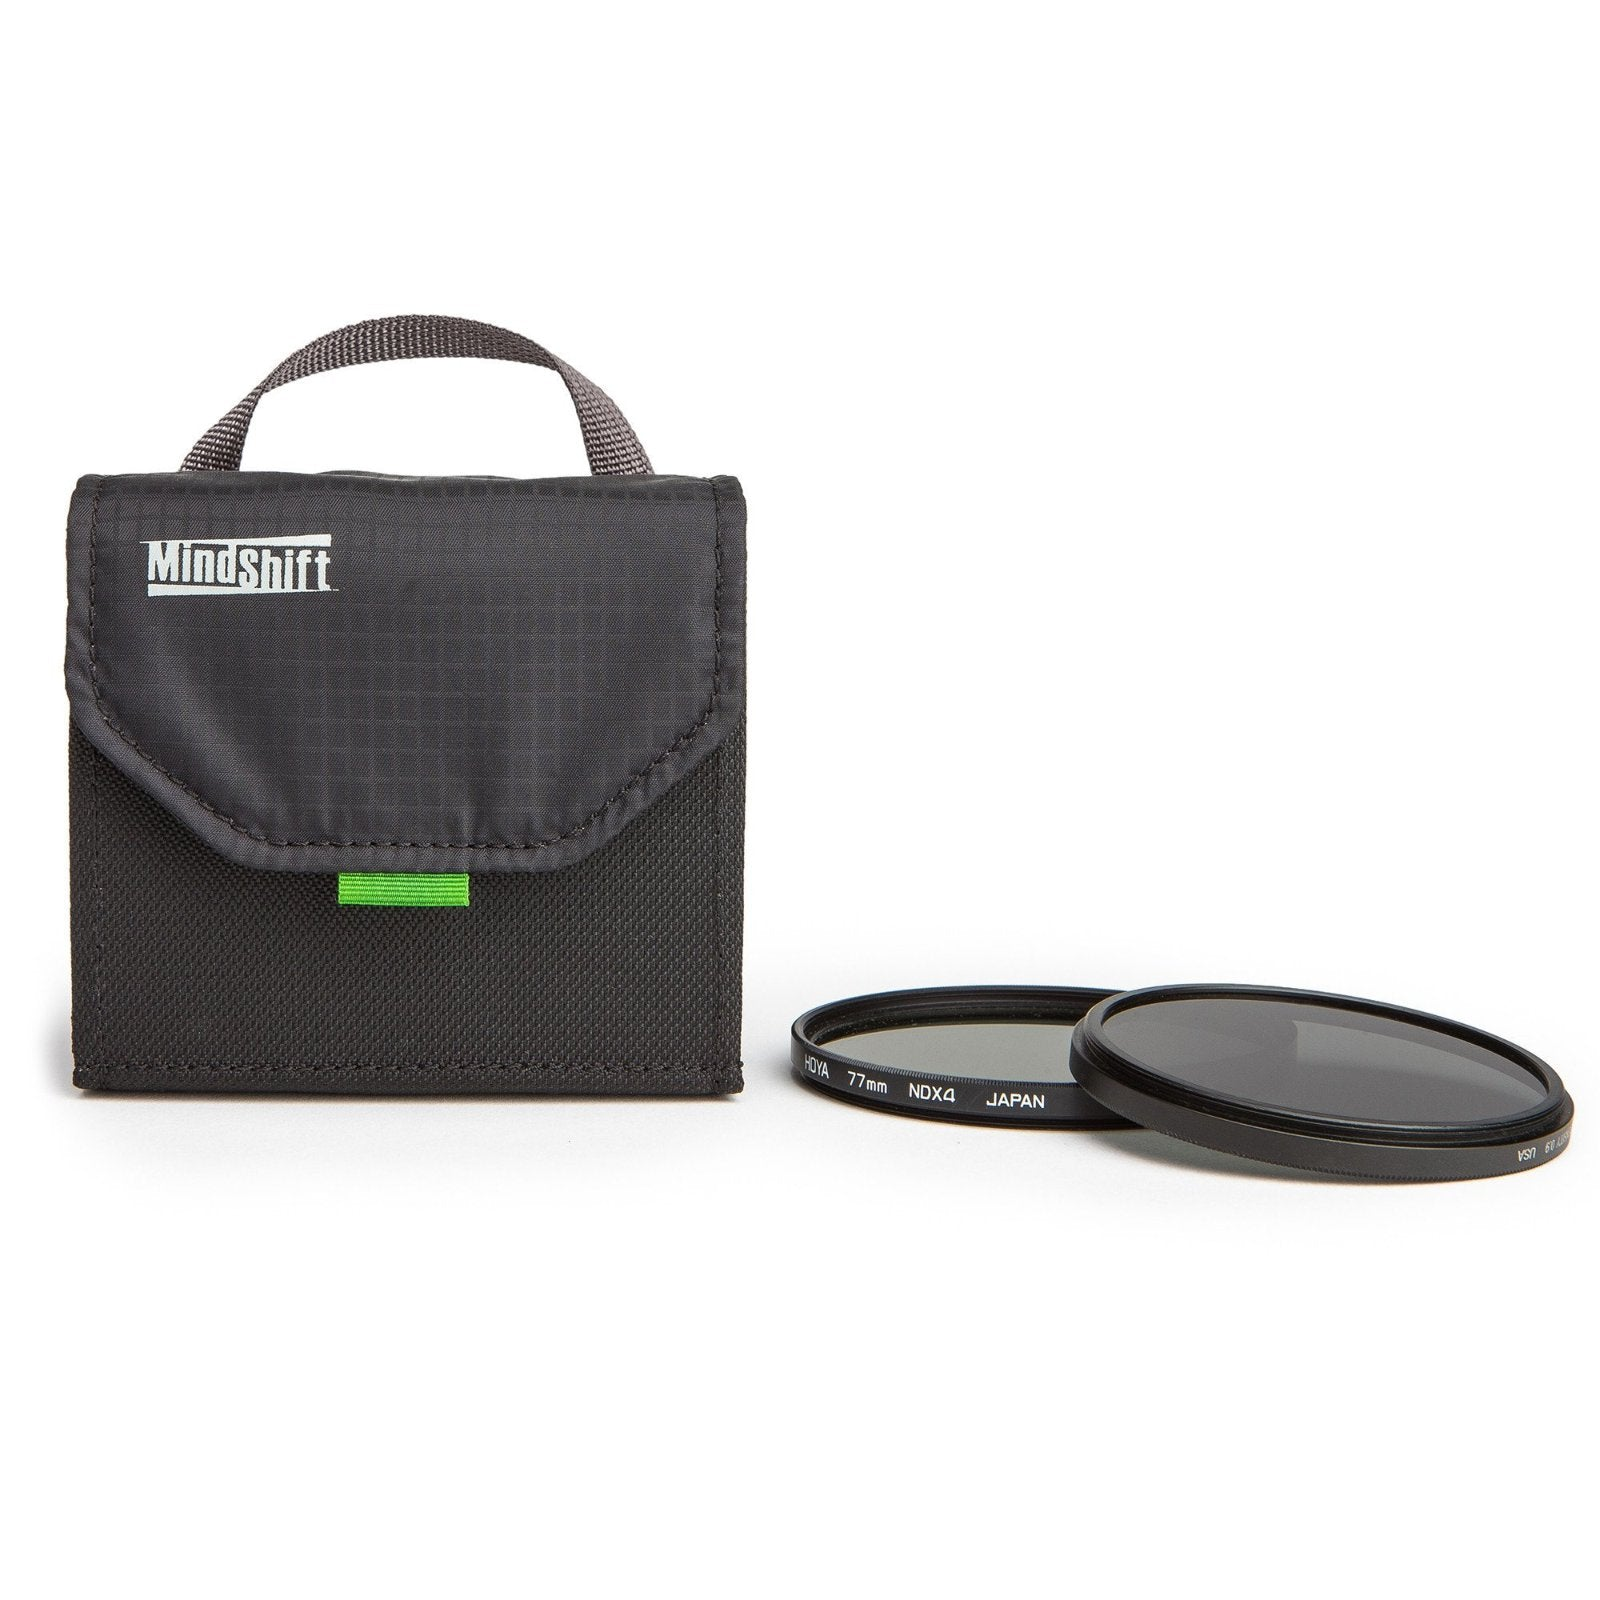 Filter Nest Mini offers protection and ease in a compact case for 4 round filters.